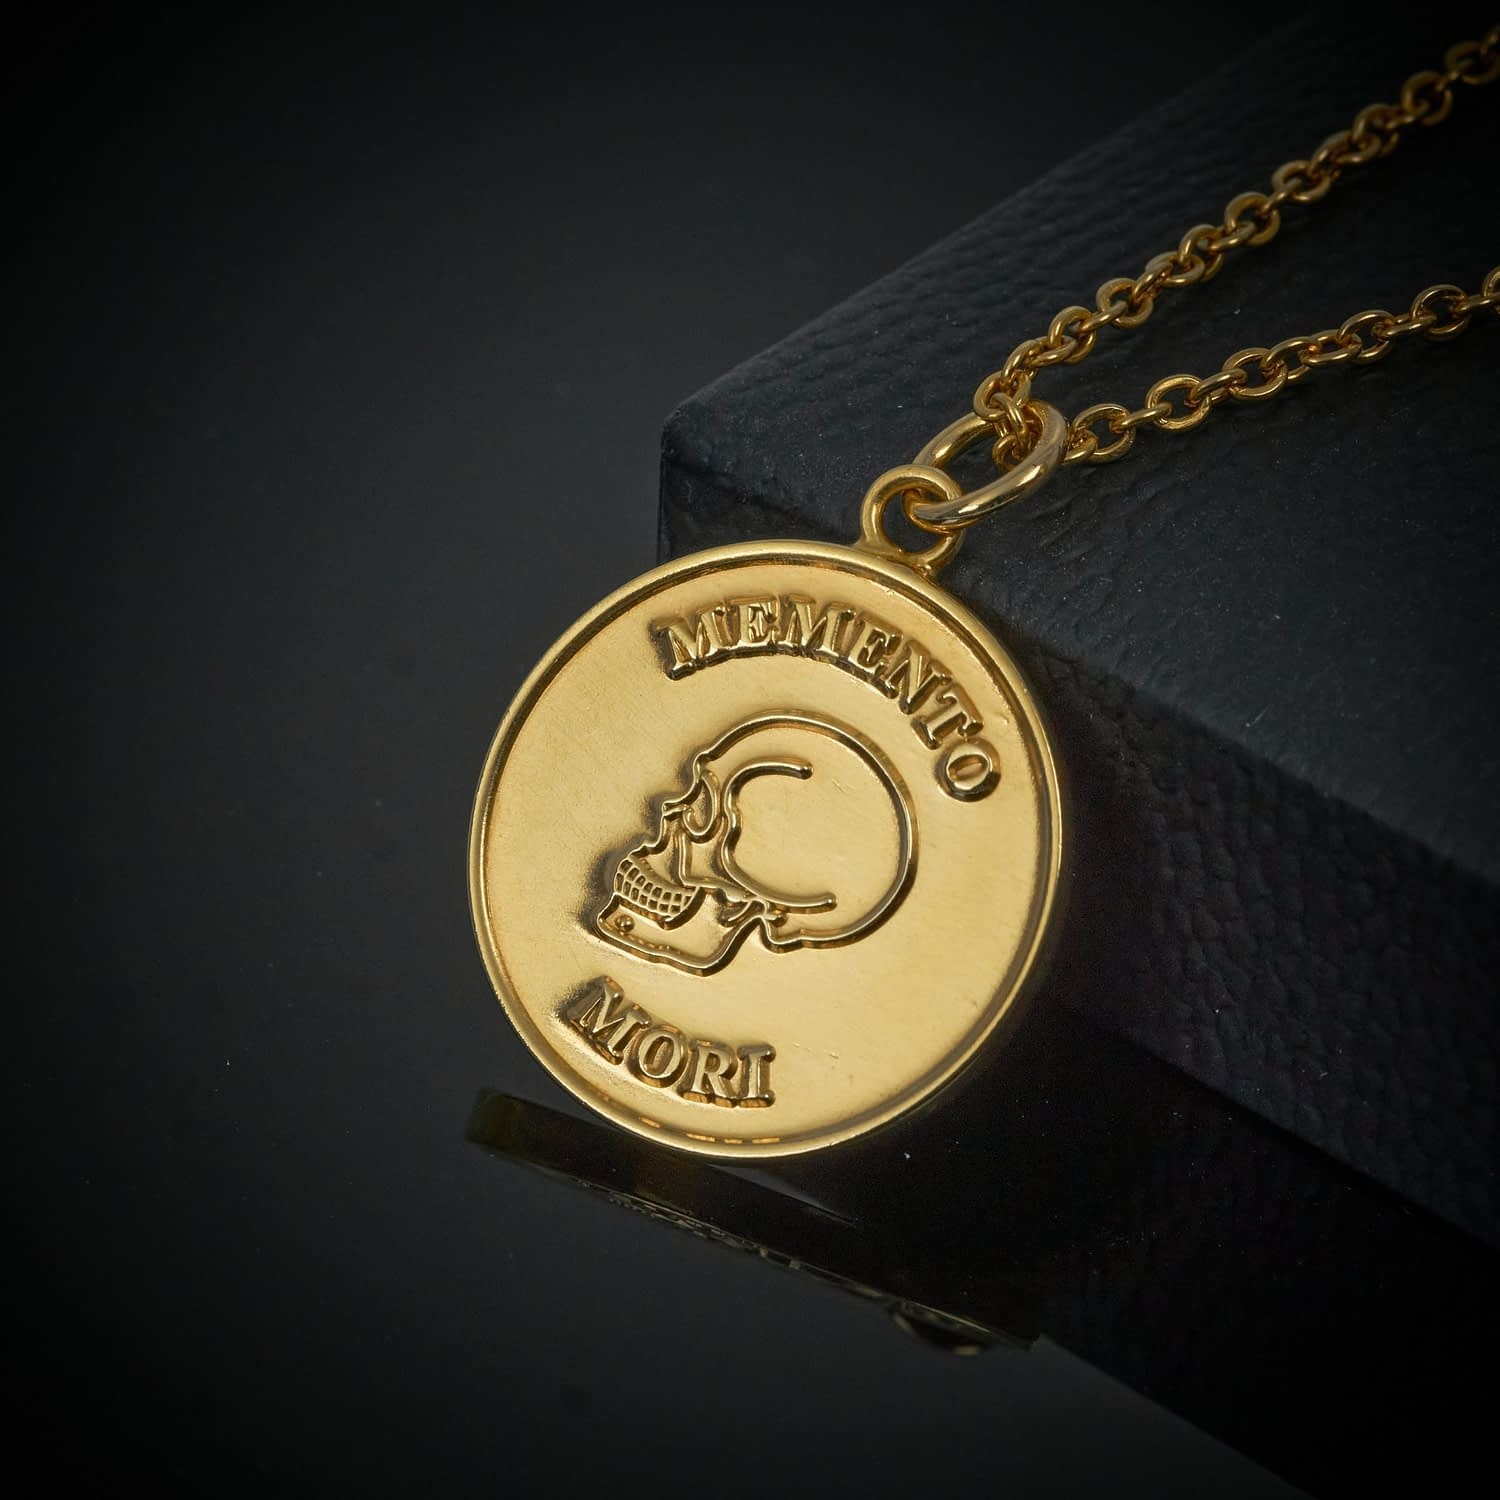 memento-mori-gold-pendant-necklace